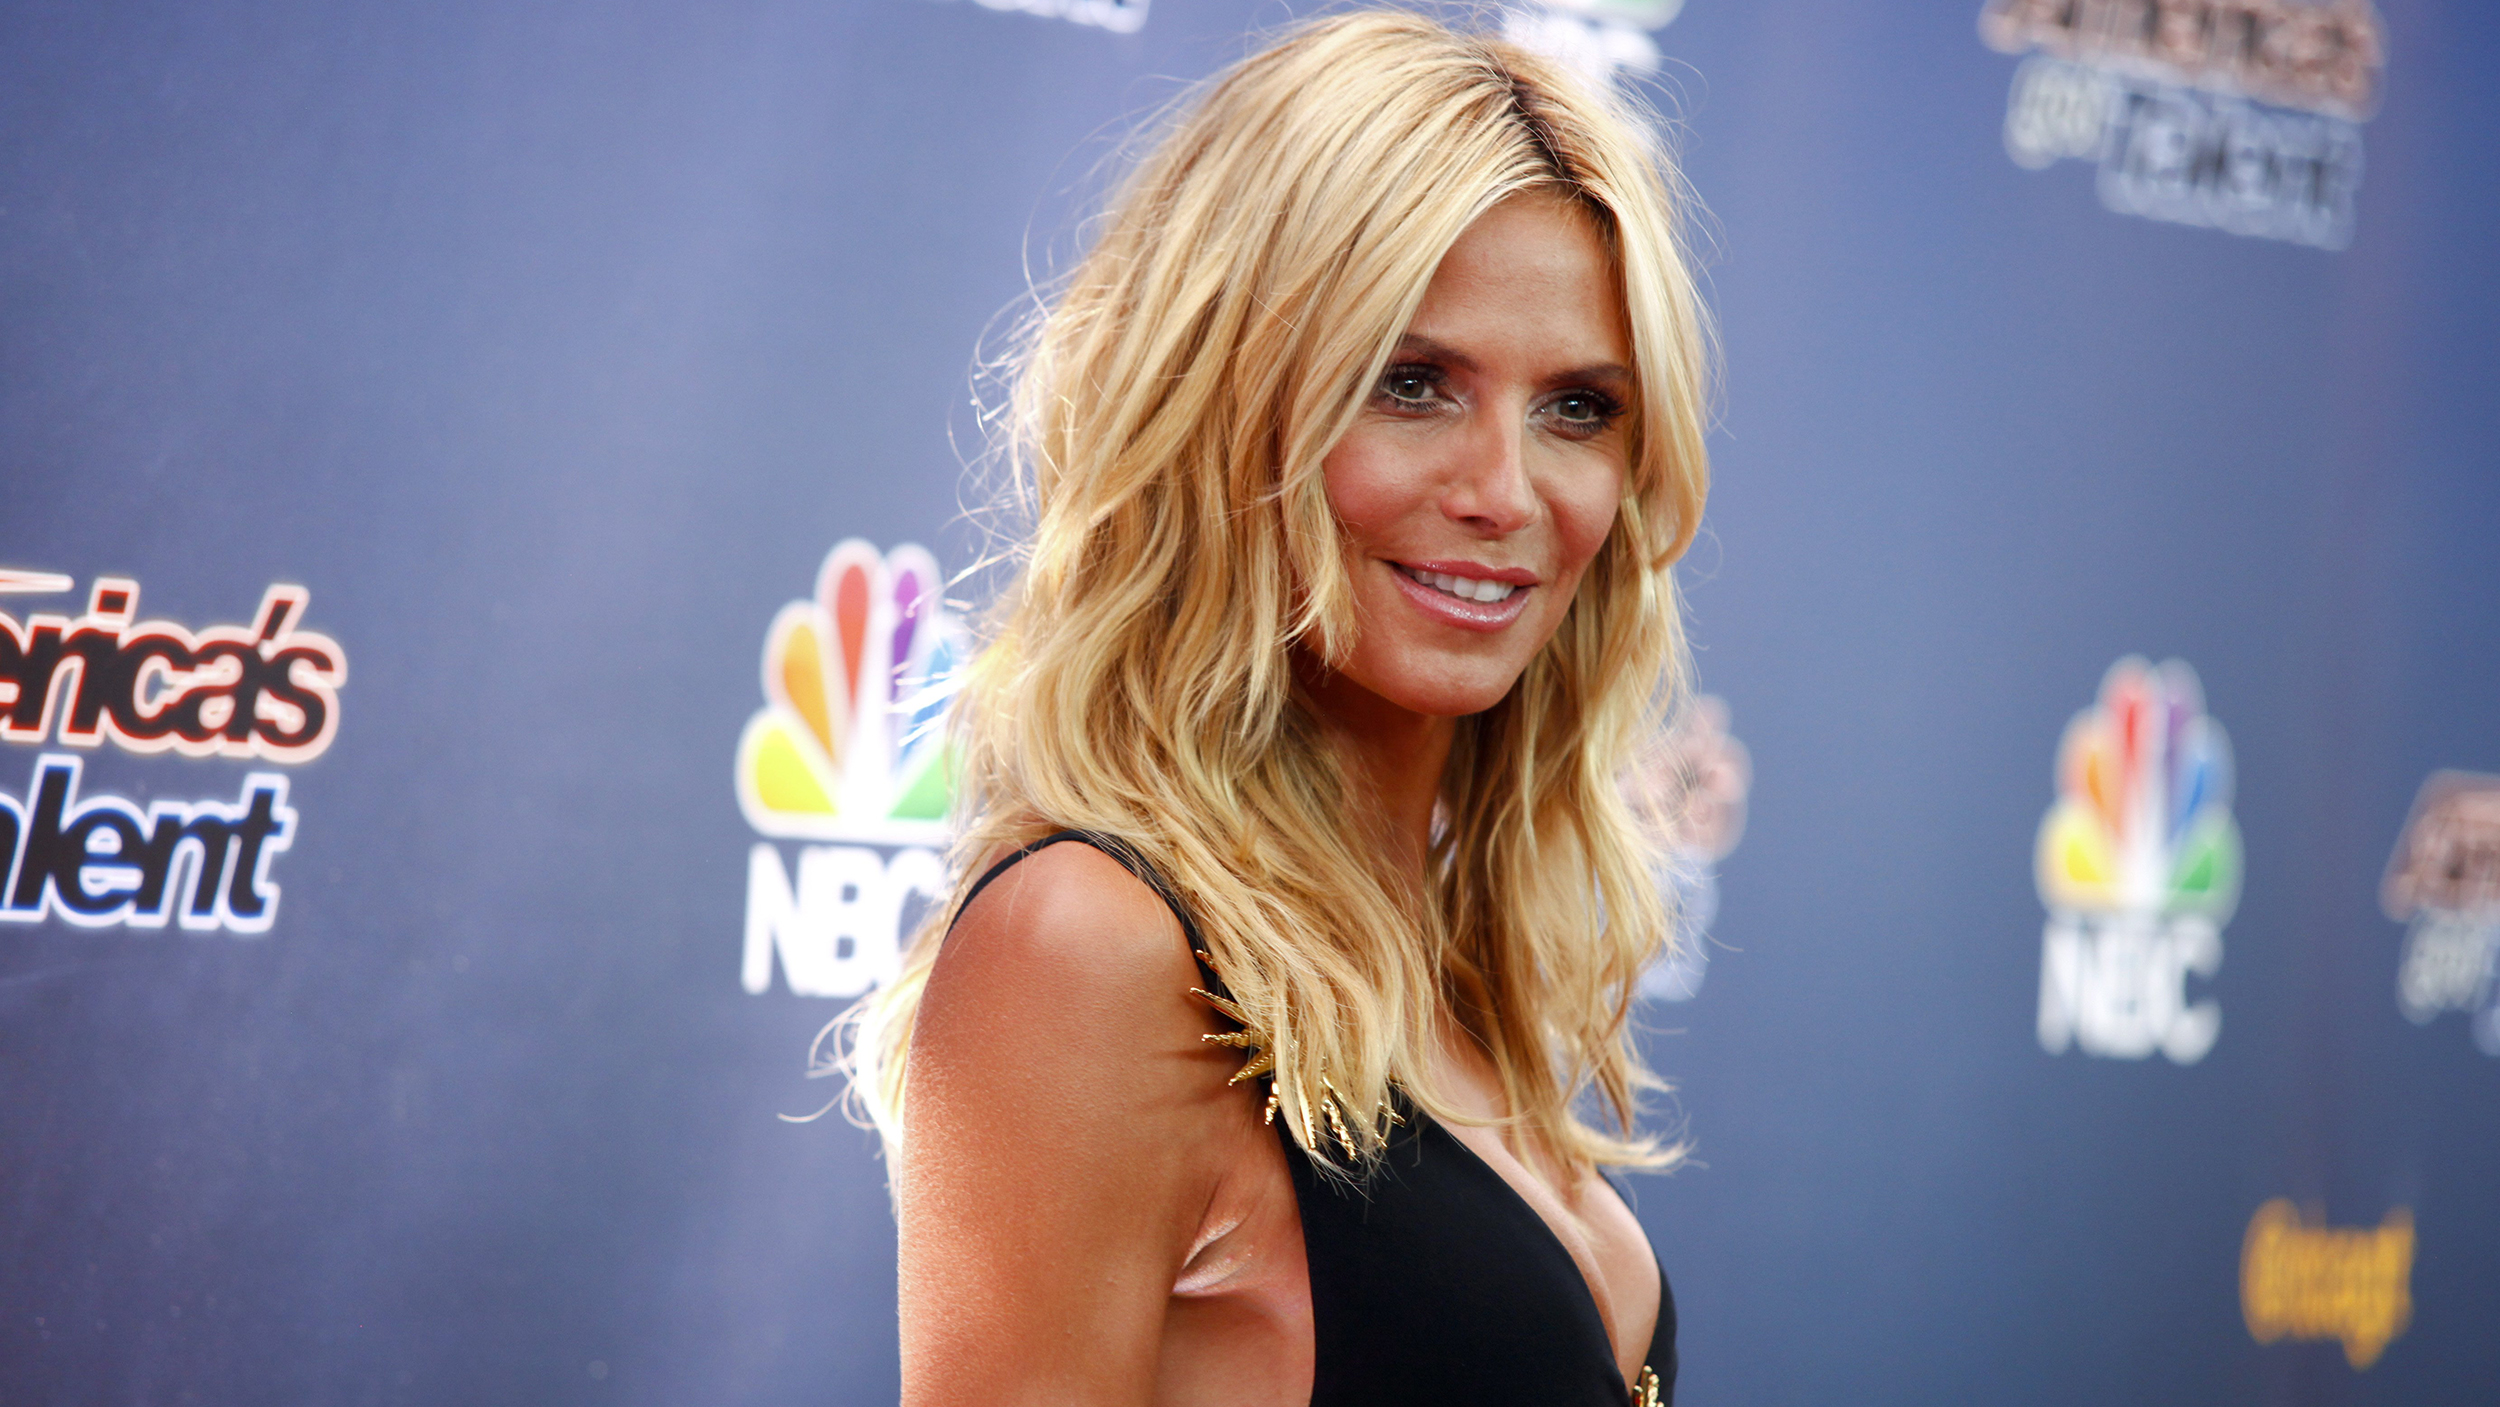 Heidi Klum on parenting after divorce from Seal: 'I'm a mom and a dad...